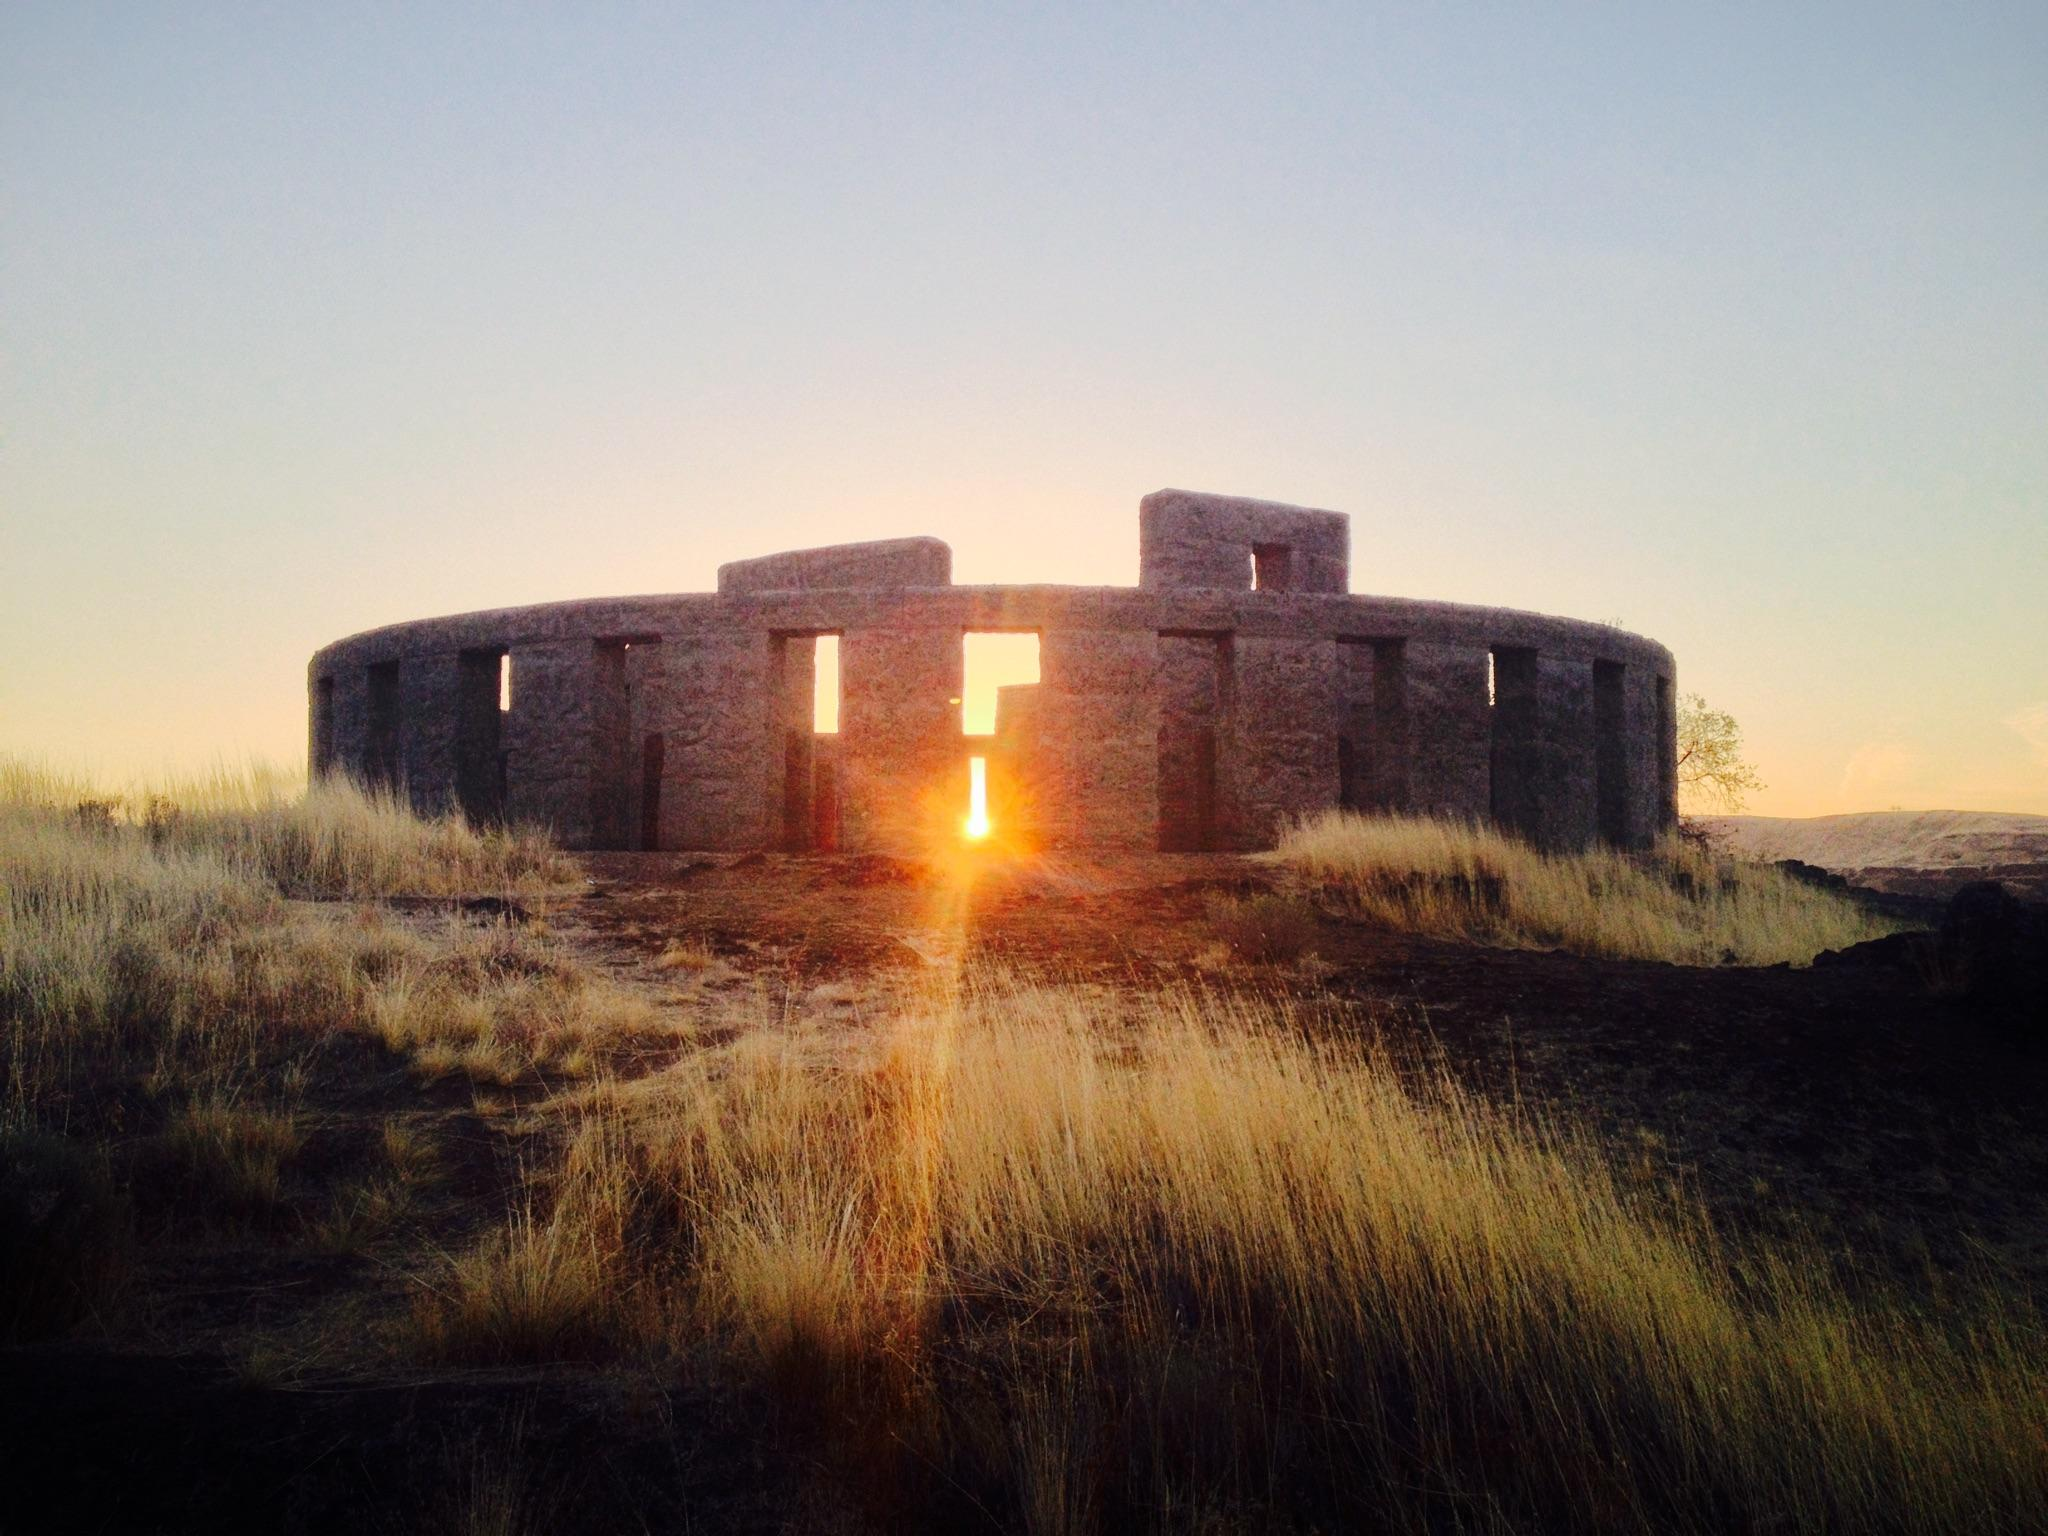 This photo was takenon the fall equinox at Stonehenge. No, not that one. This one is in Maryhill, Washington. The Stonehenge may not be the real thing, but the sunrisedefinitely is.